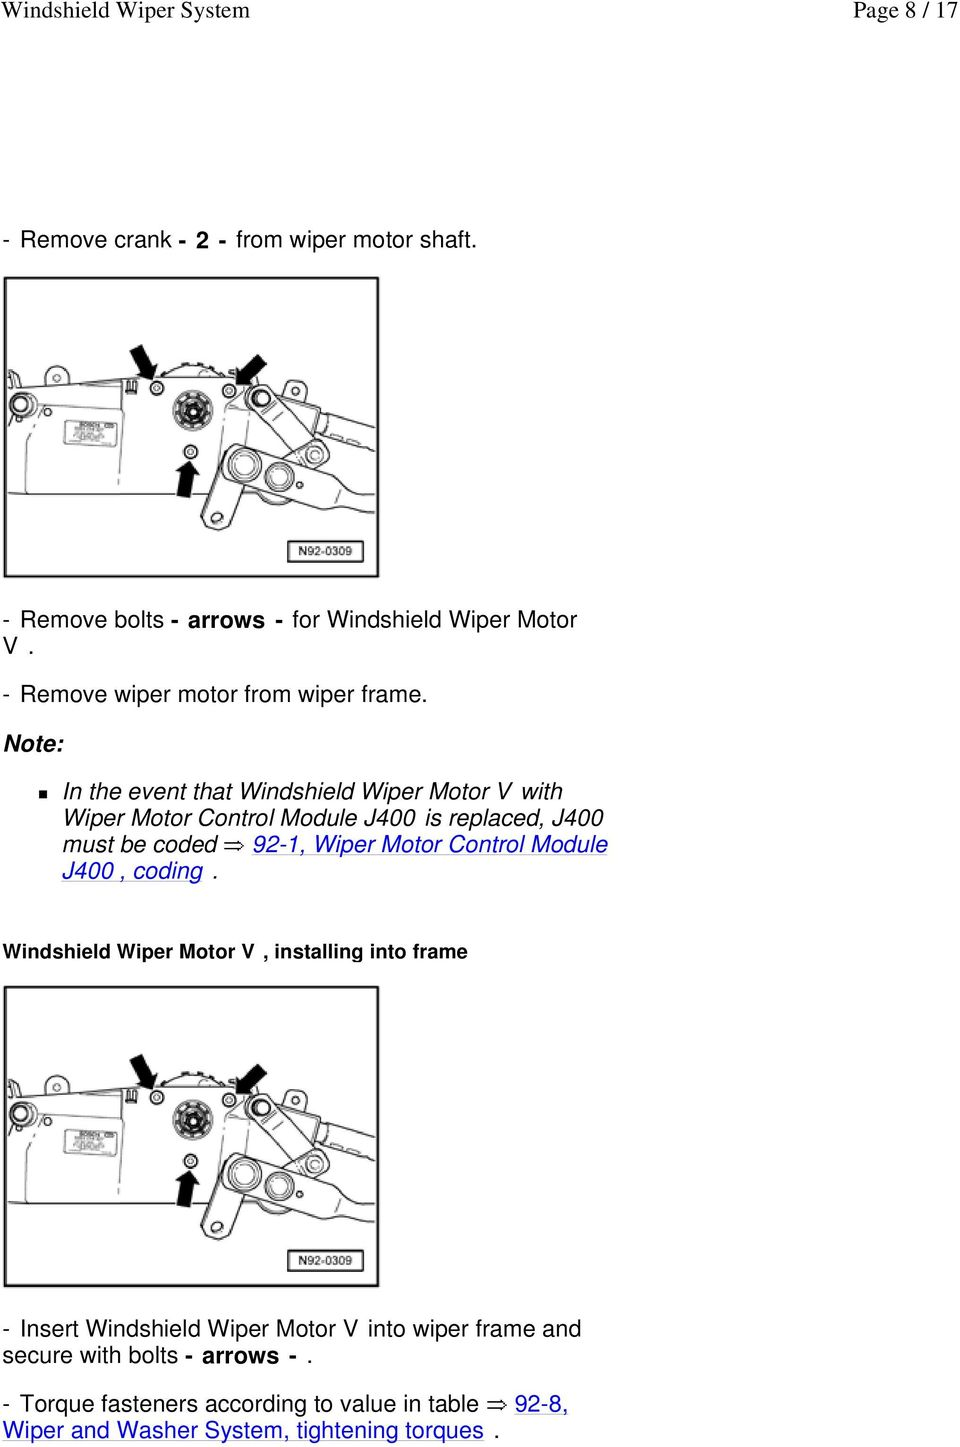 hight resolution of in the event that windshield wiper motor v with wiper motor control module j400 is replaced